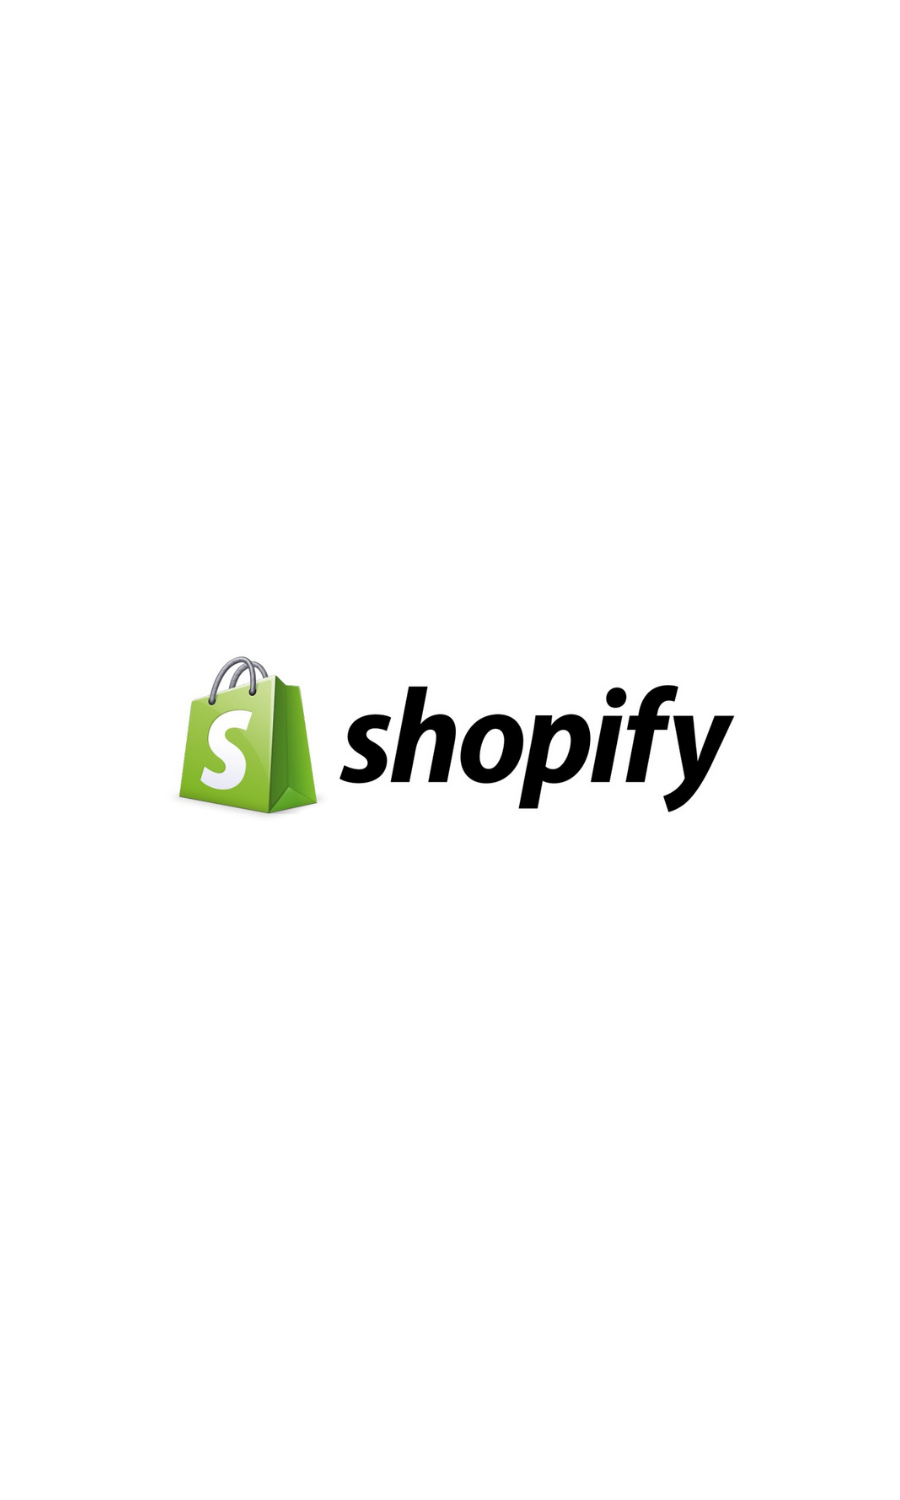 Shopify Logo Home Page (1)